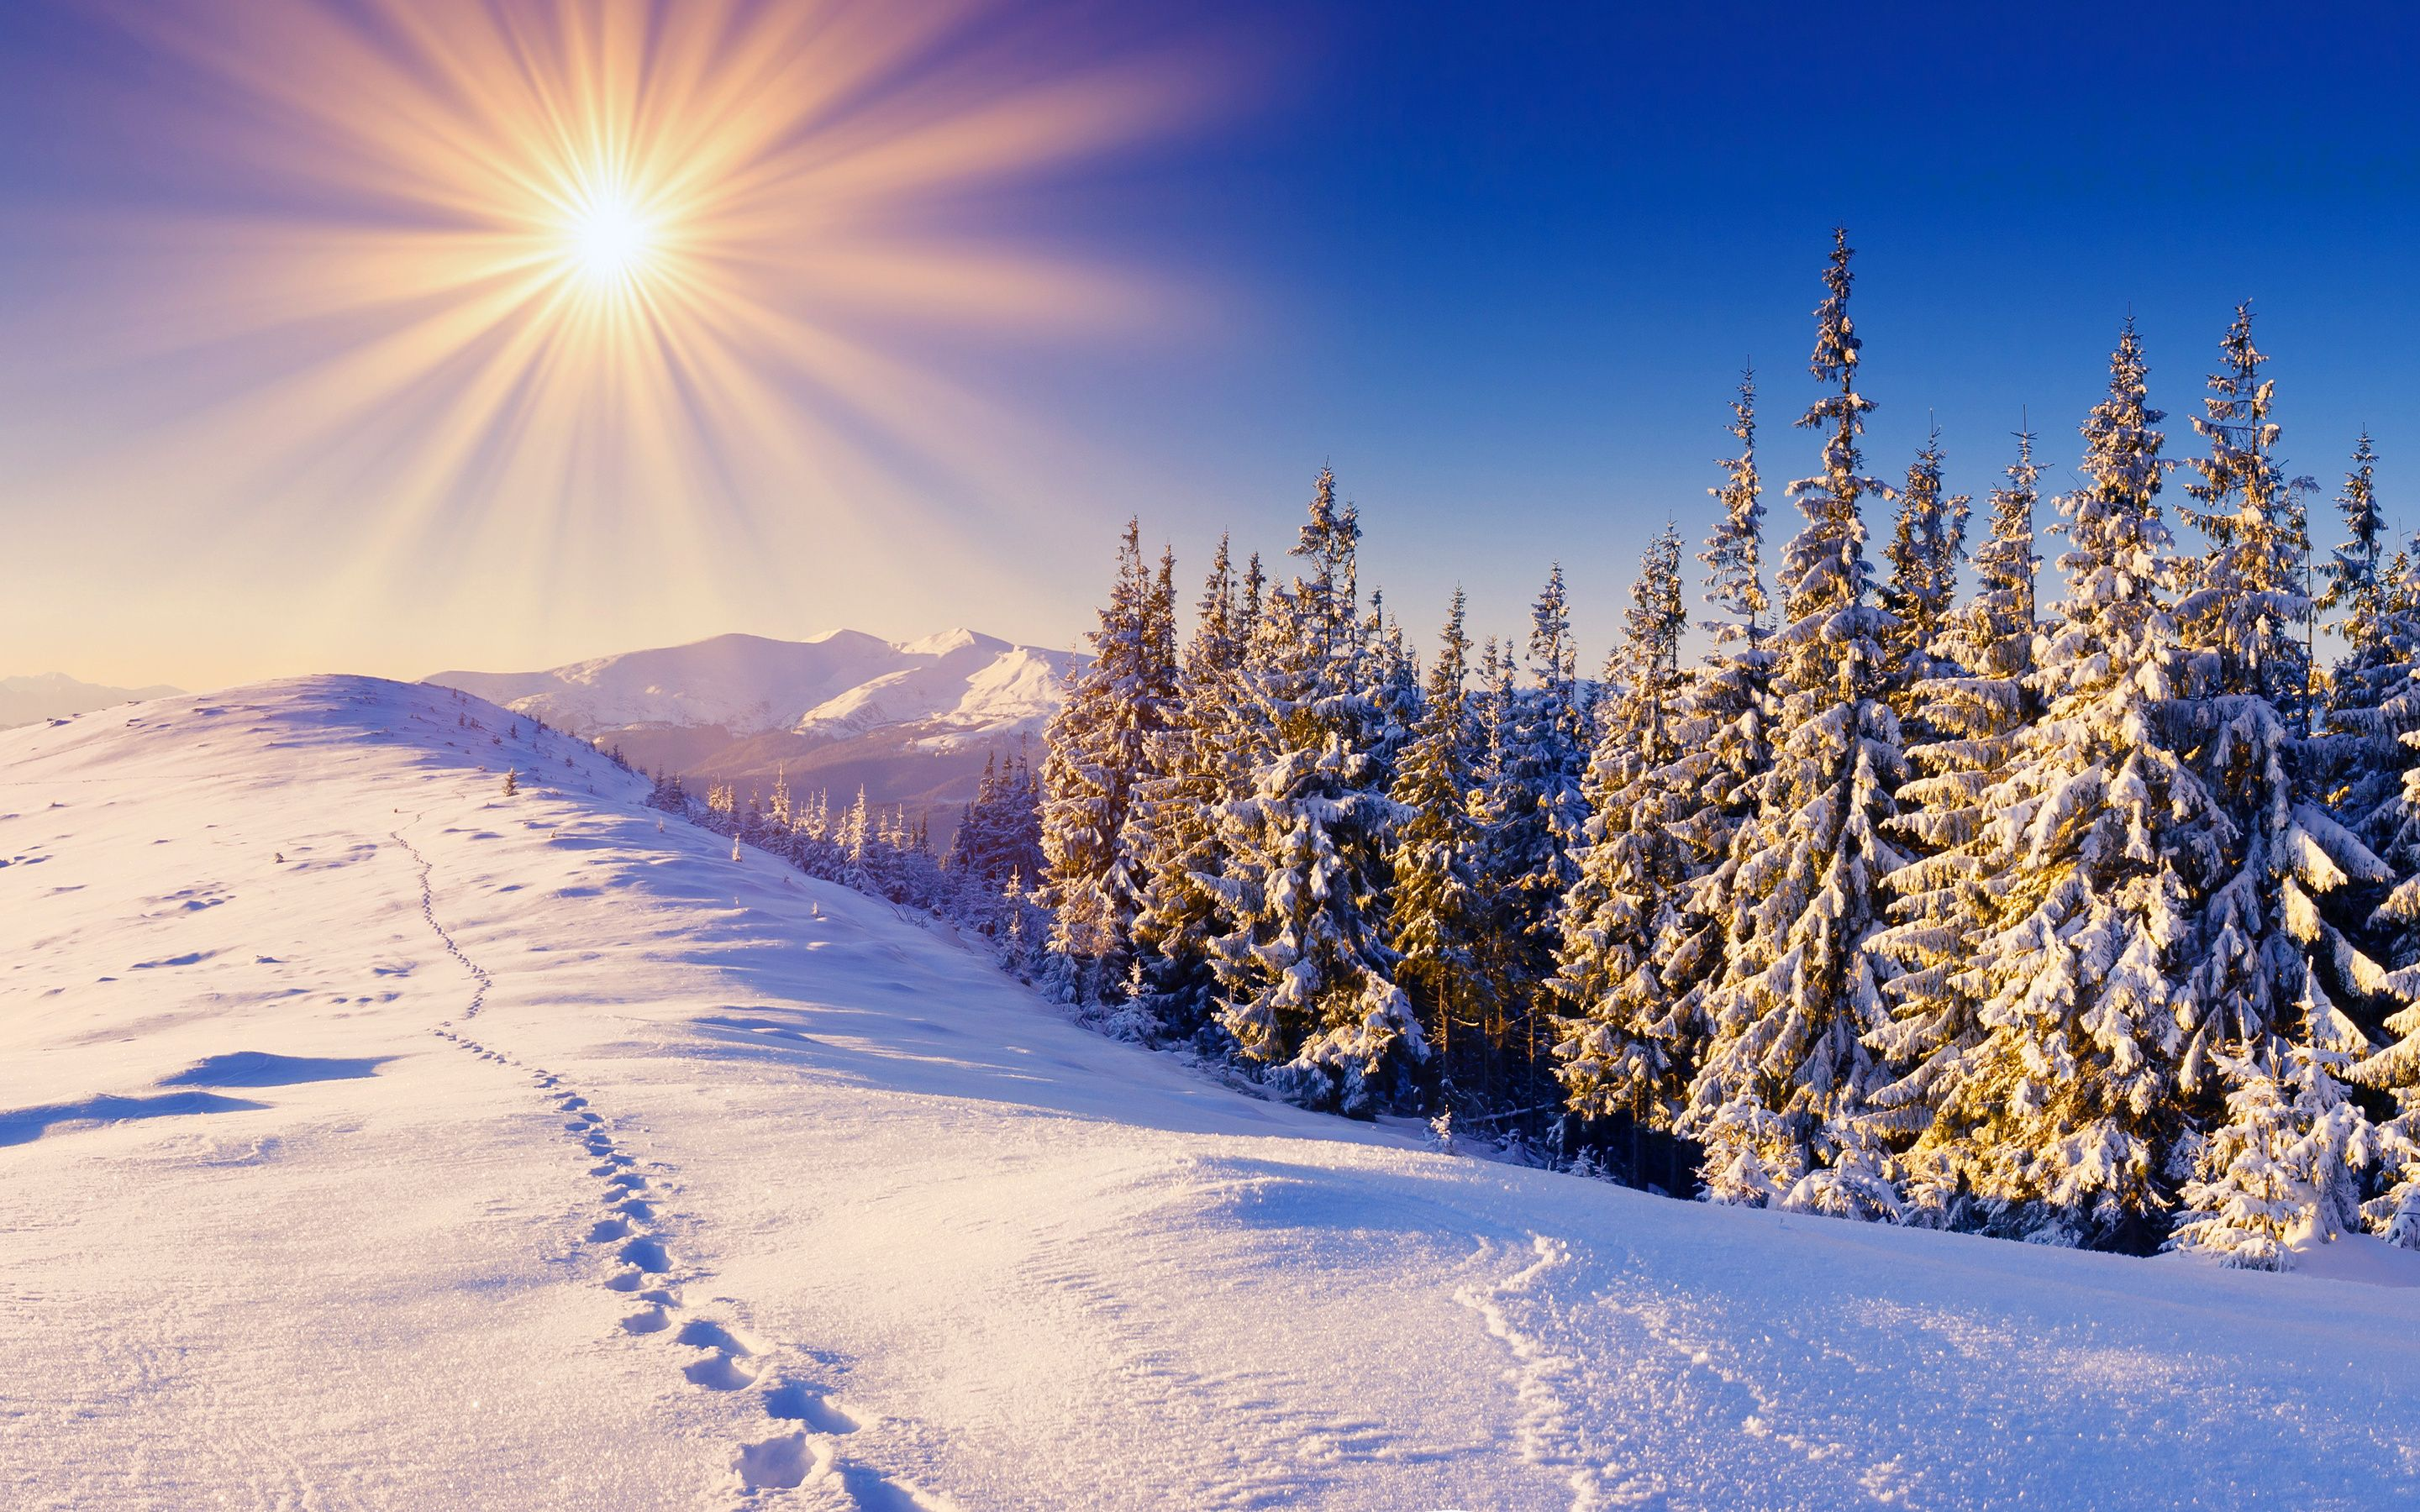 solar winter sun snow Winter wallpaper, Winter